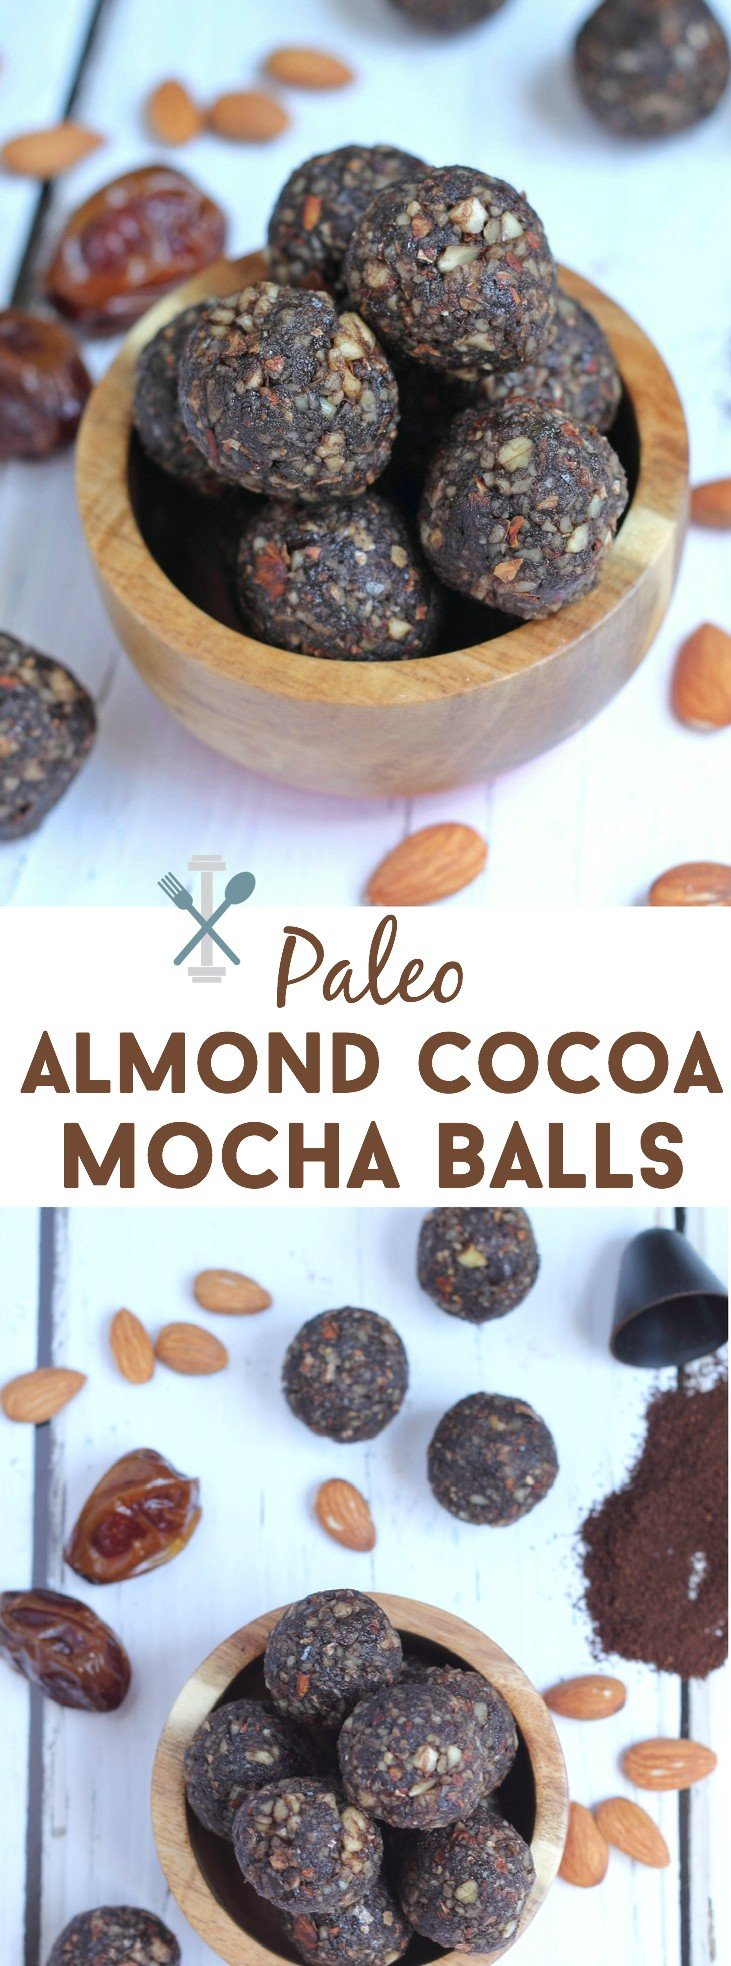 These paleo and vegan almond cocoa mocha balls are a sweet, healthy treat with a nice hint of cocoa and coffee flavor. A great portable snack, on-the-go breakfast, or post-workout fuel!